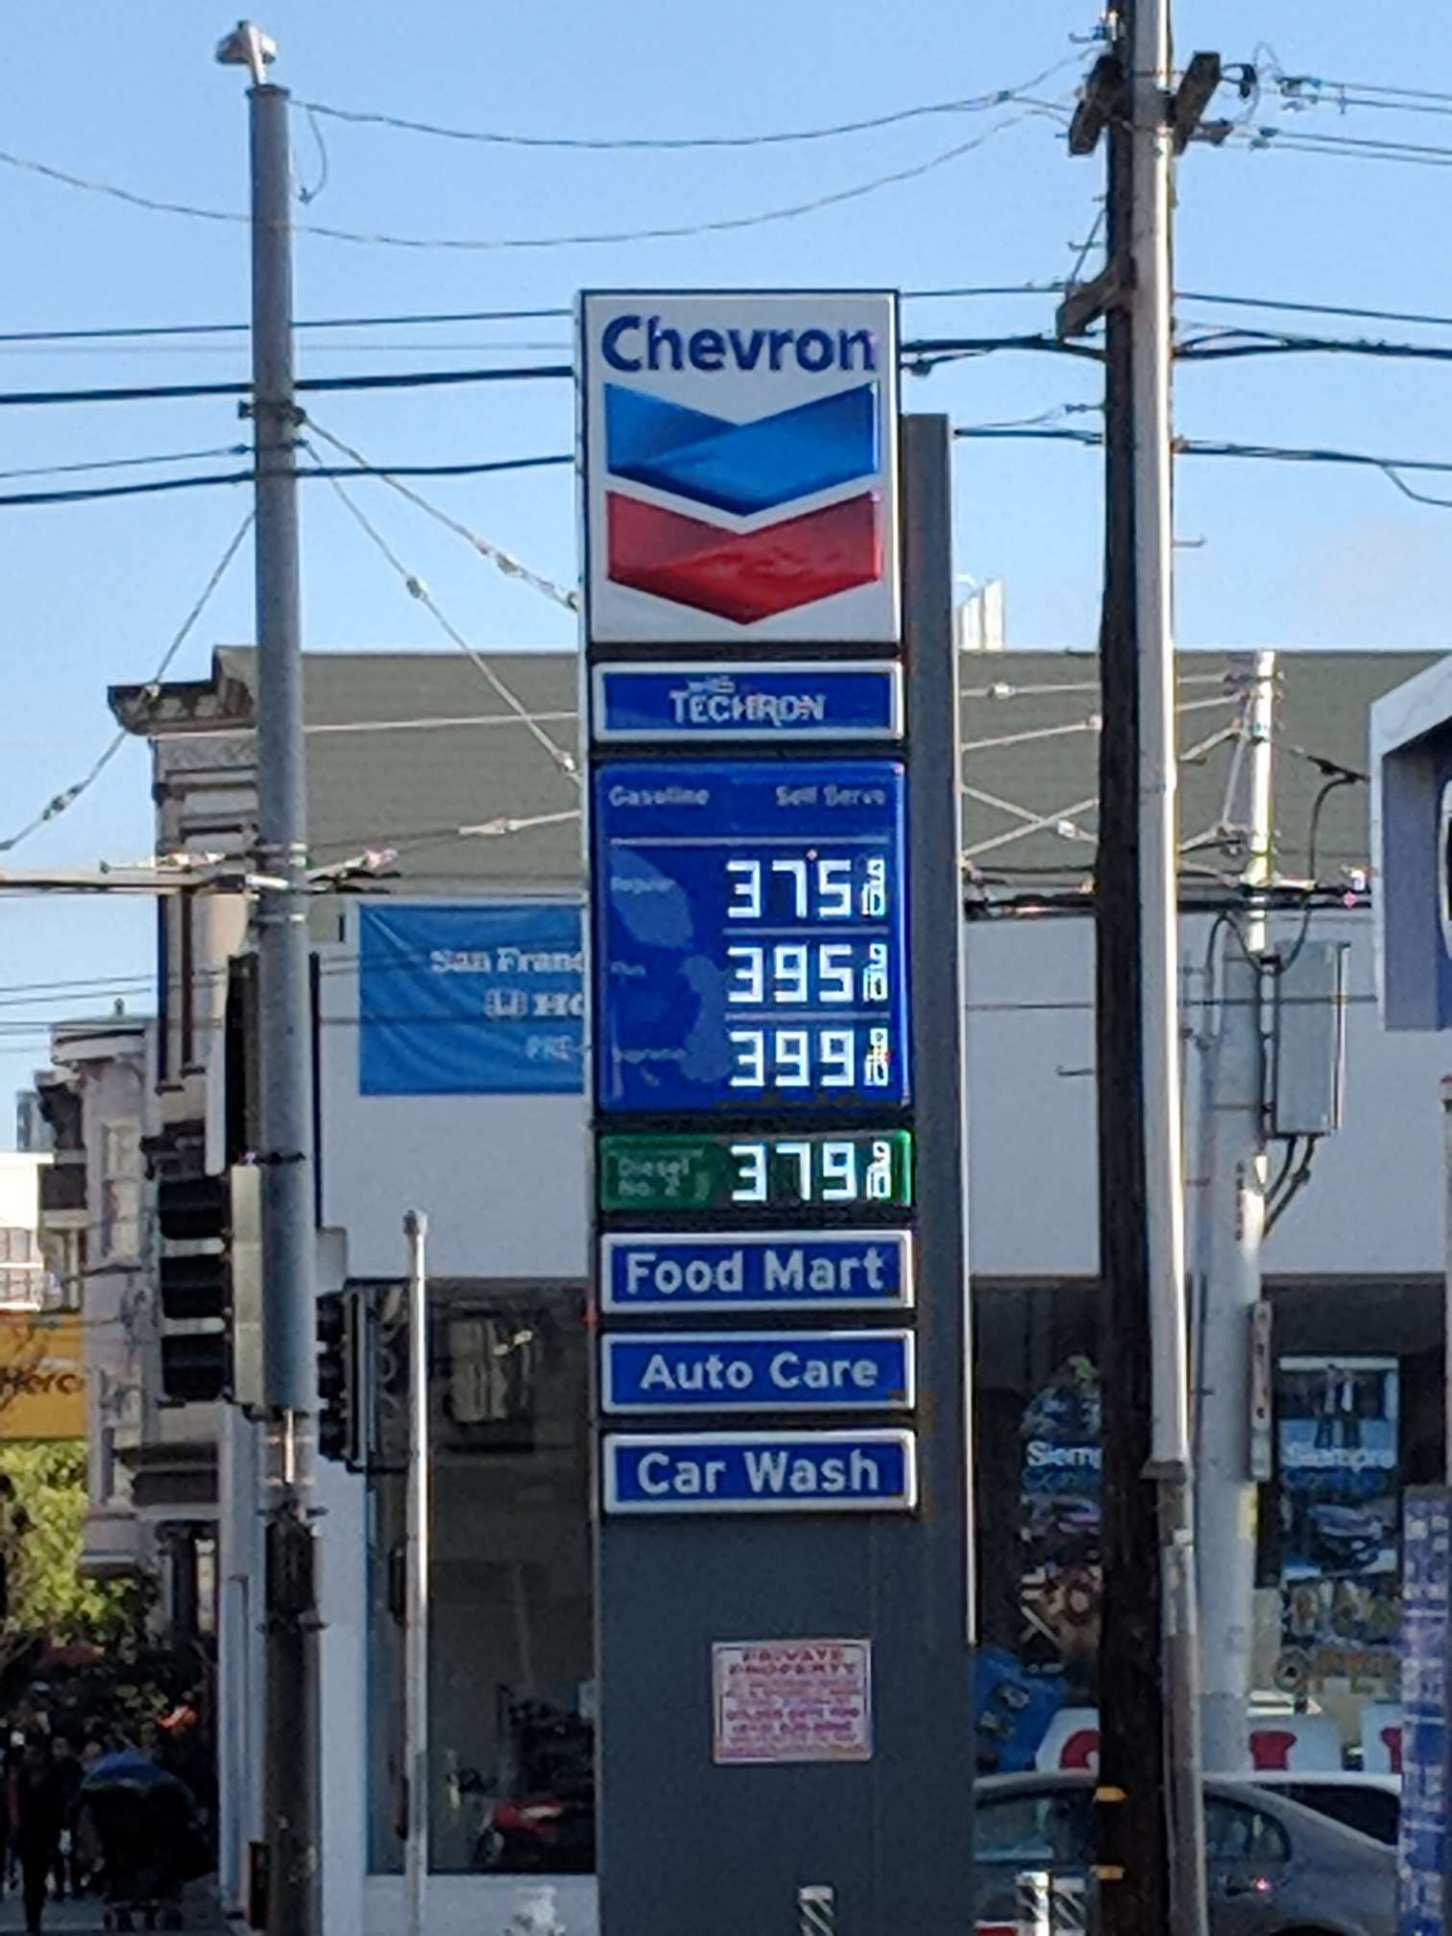 Average gas price in California predicted to hit $4 a gallon